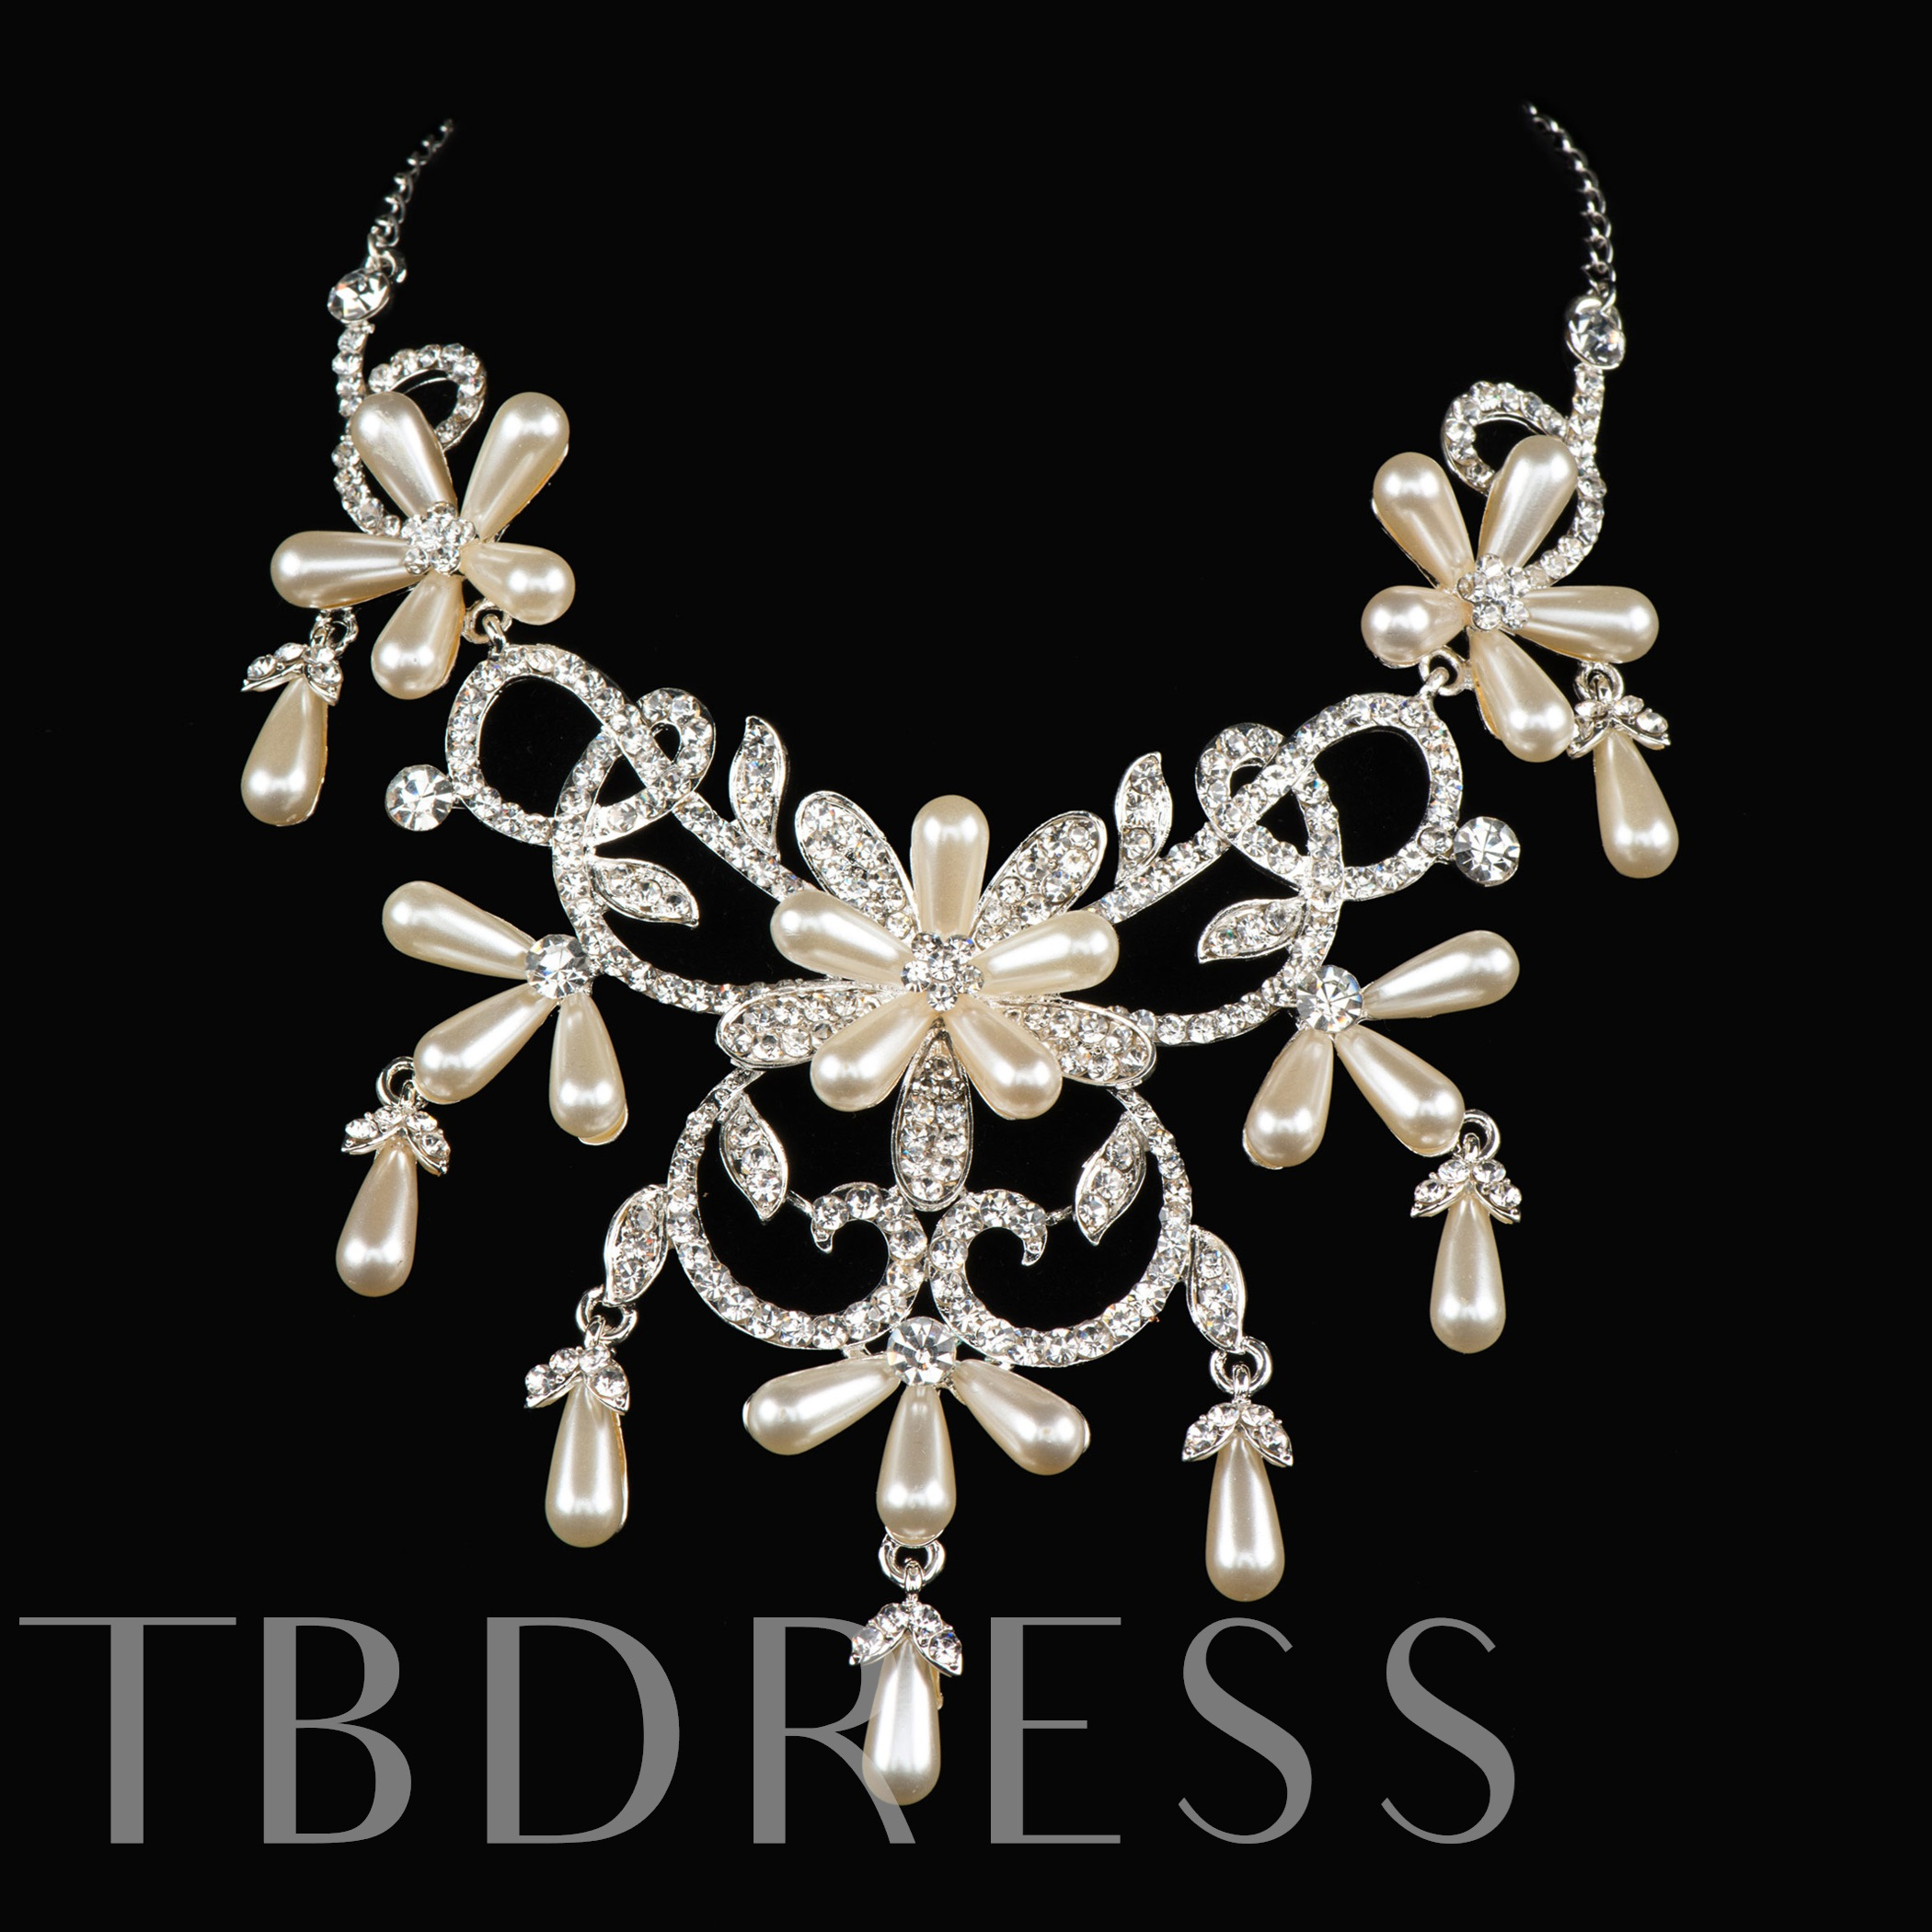 Pearls Wedding Jewelry Set (Include Tiara Necklace and Earring)